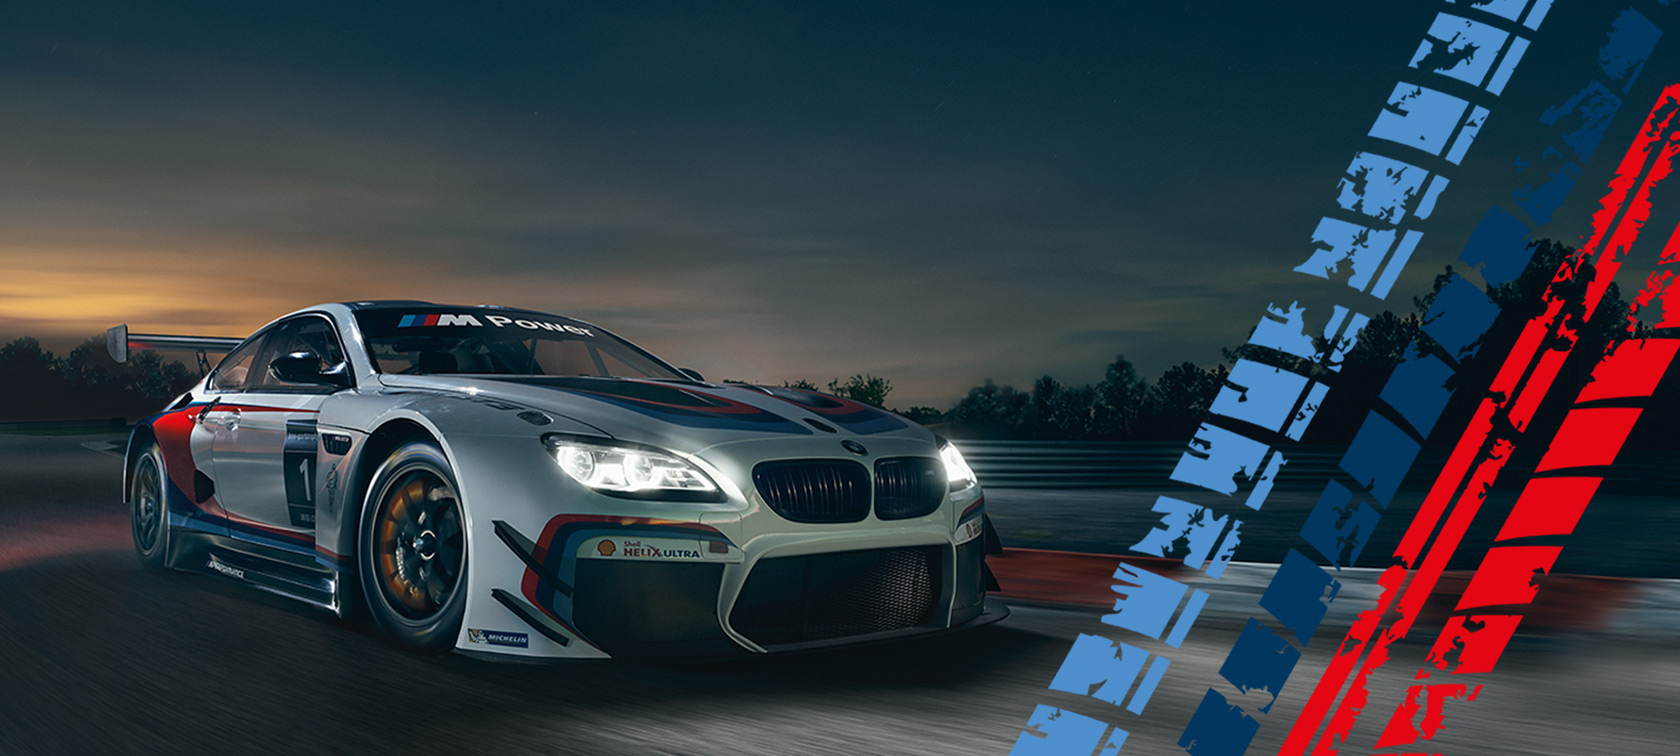 BMW M Events And Festivals - Car events